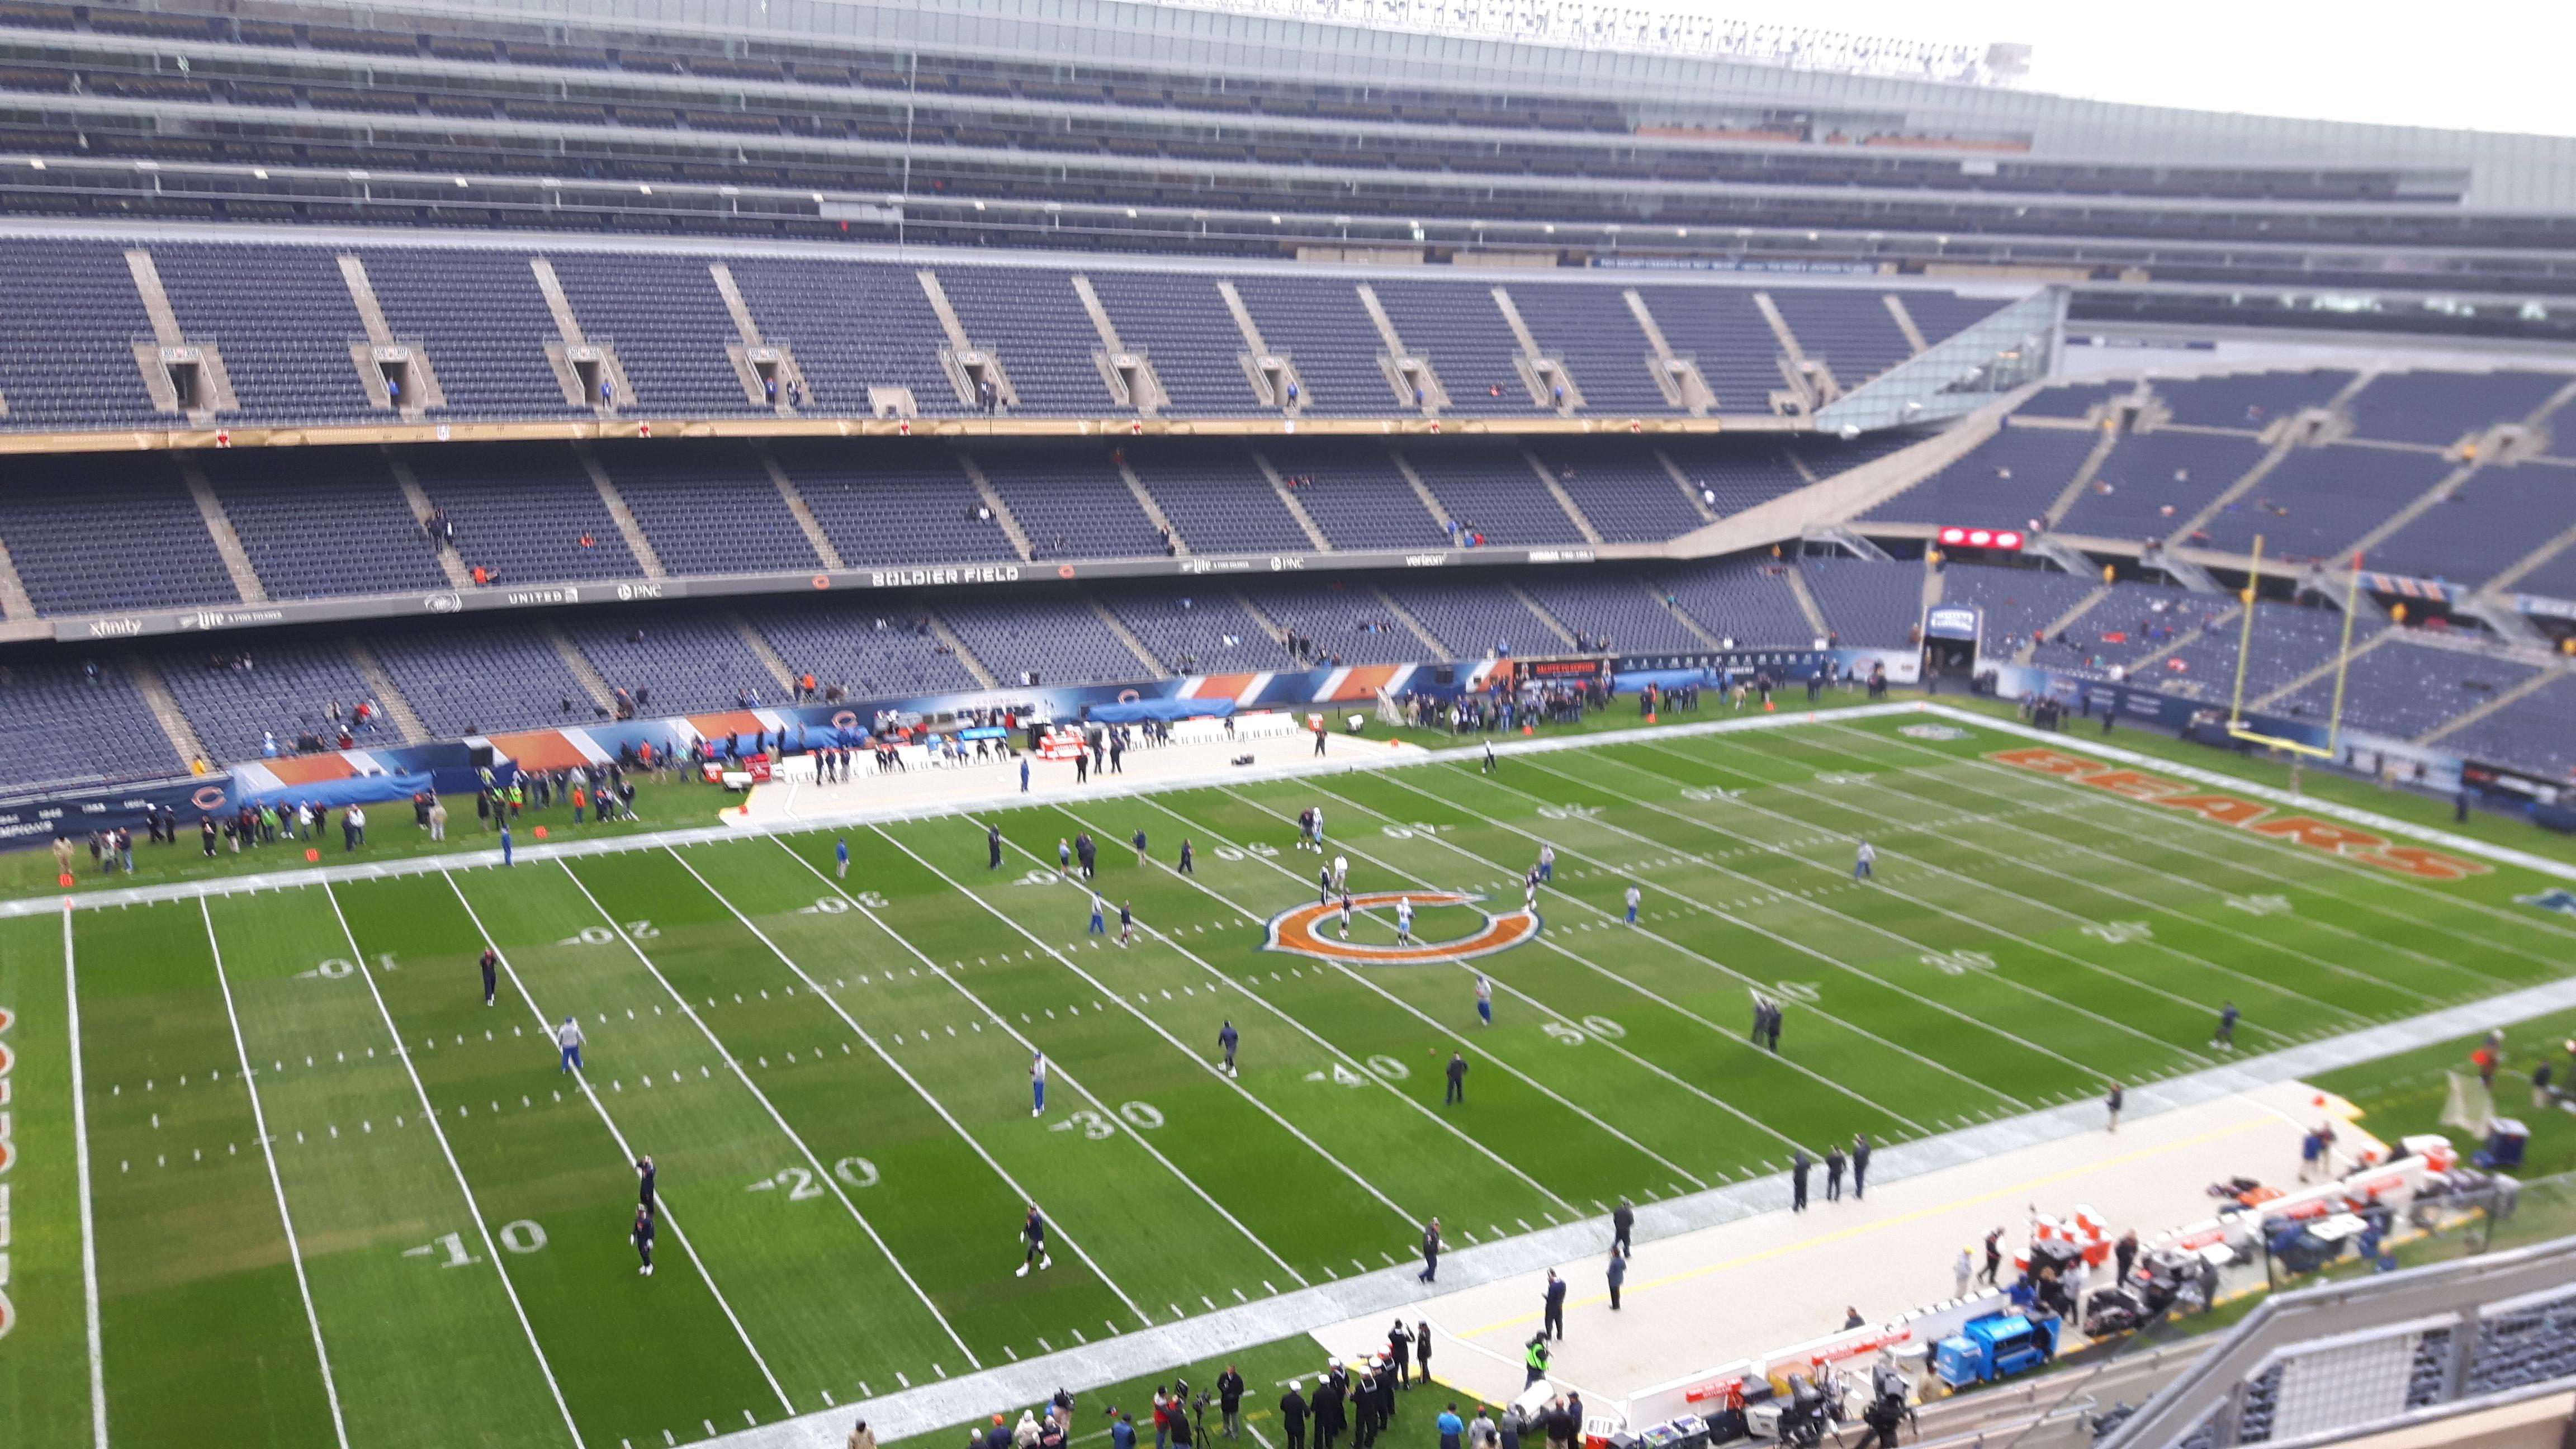 Soldier Field Section 441 Row 5 Seat 7